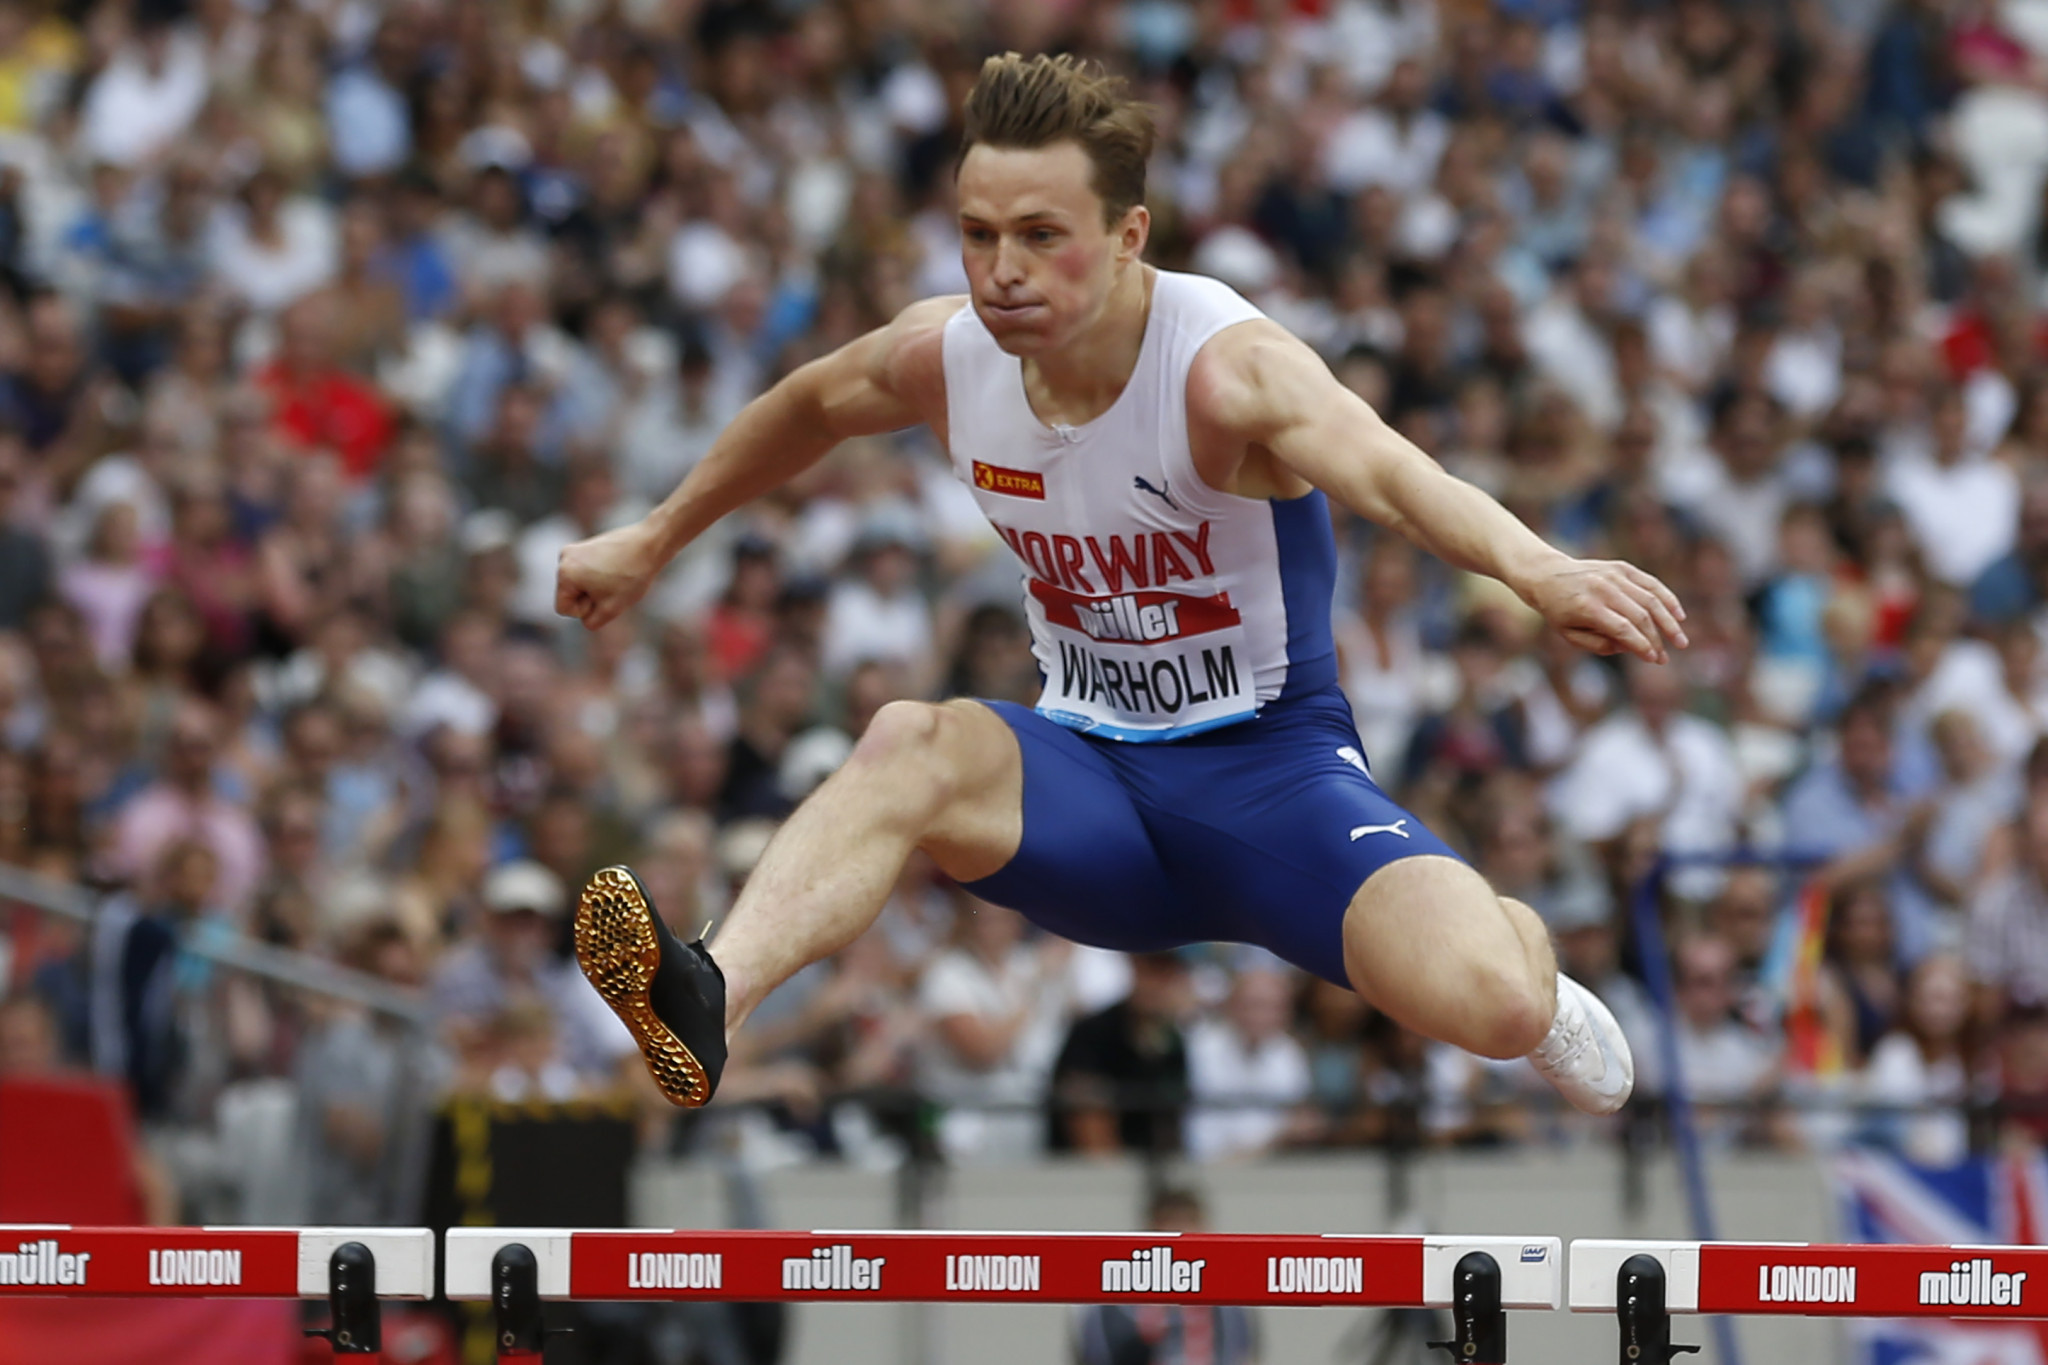 Warholm lowers his European 400m hurdles record on first day of London Diamond League meeting